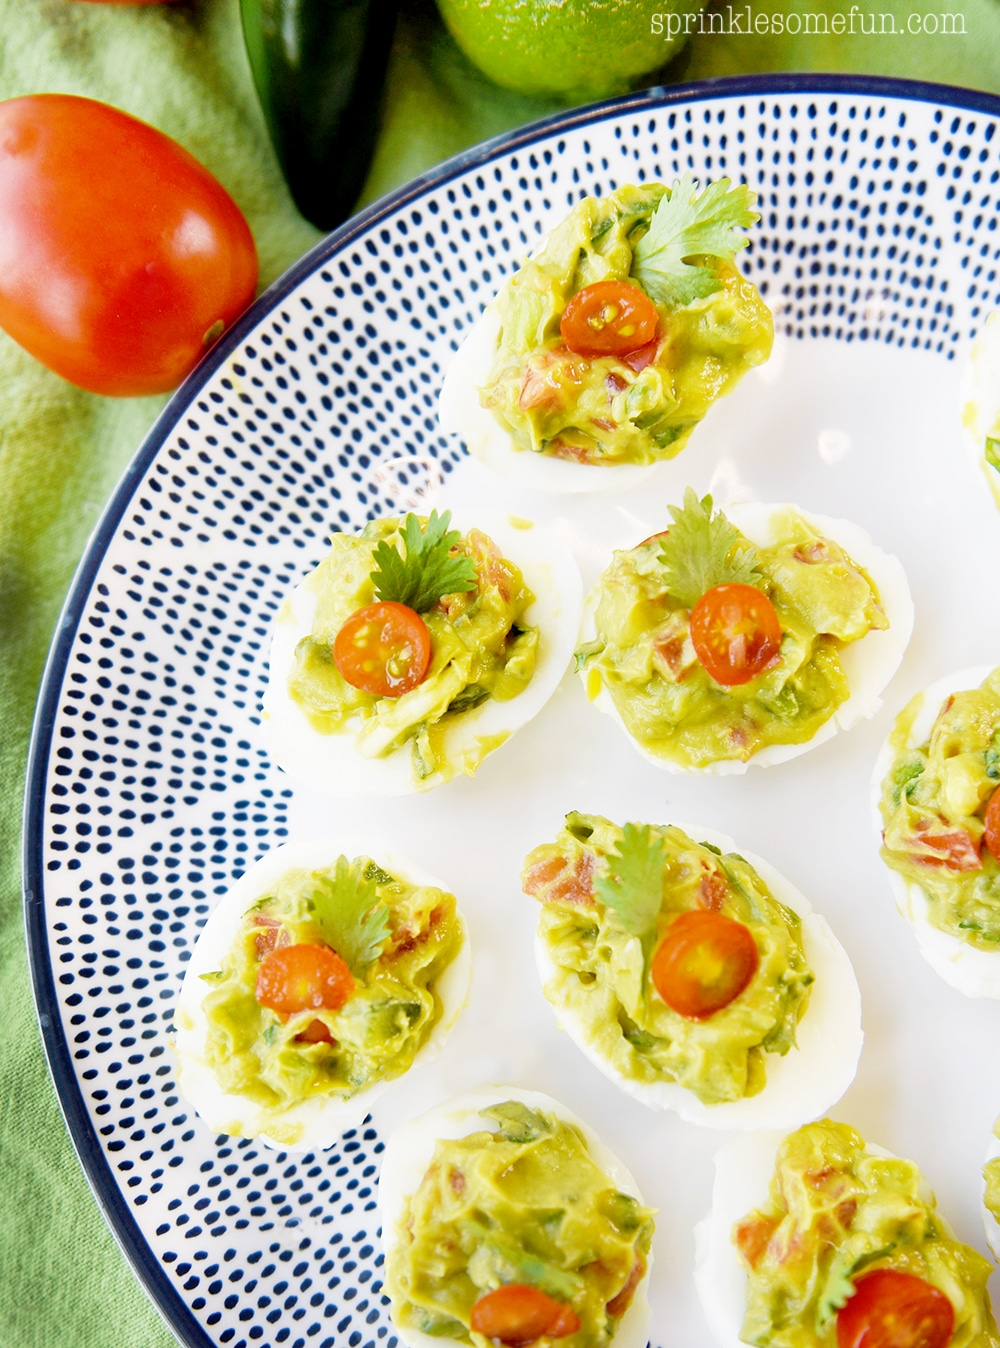 Guacamole deviled eggs are a healthy appetizer